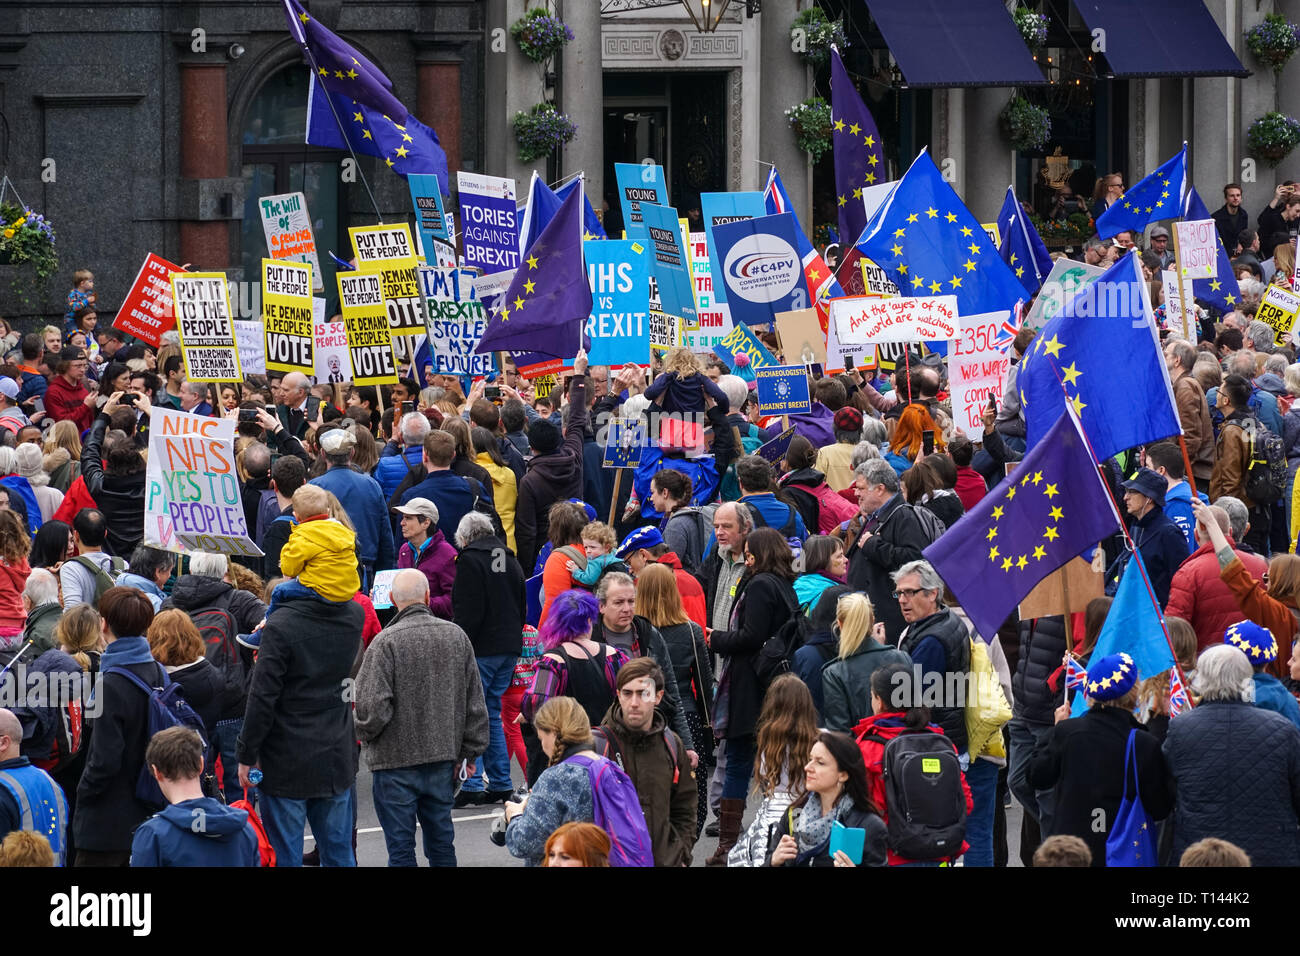 London, UK. 23rd March, 2019. Thousands of protesters join the People's Vote March in London. Credit: Marcin Rogozinski/Alamy Live News - Stock Image